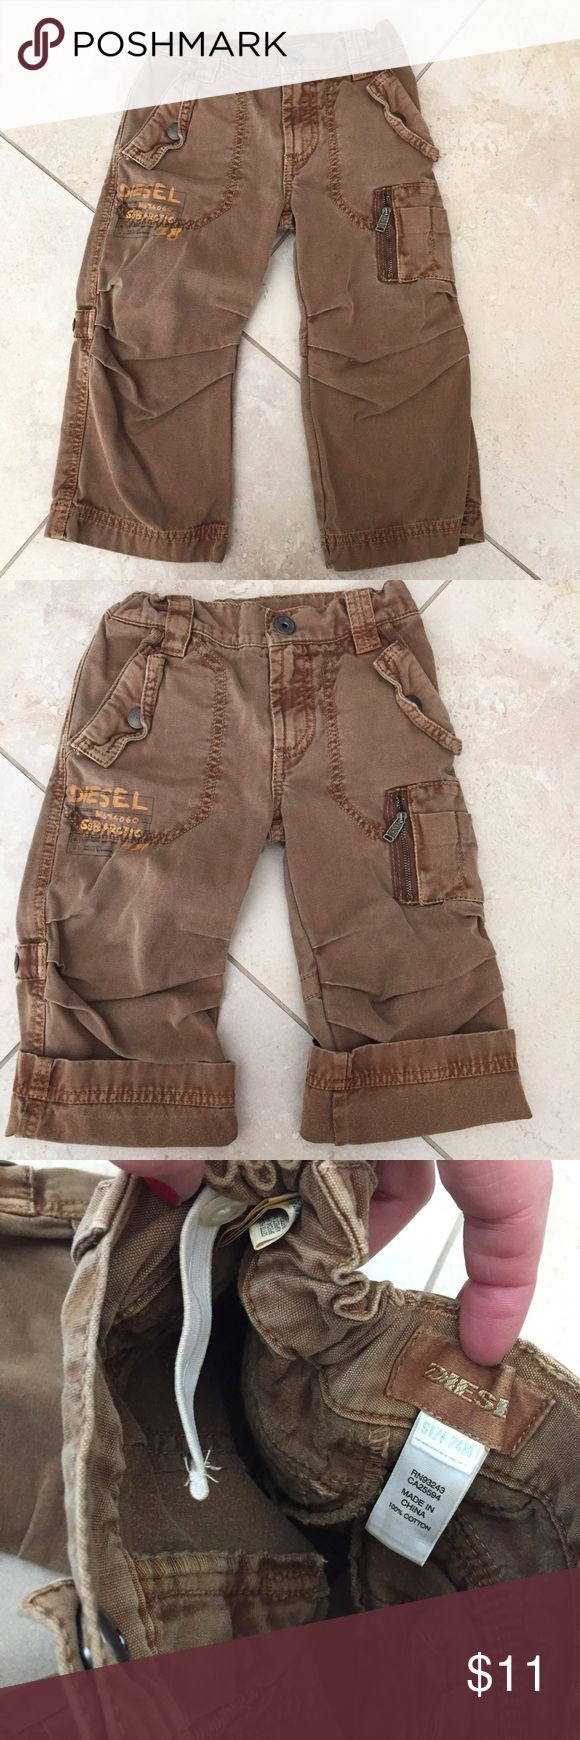 Diesel pants 24 mo /2T(rolled )would fit up to 3T Diesel pants 24 months(rolled )but i know would fit up to 3T plus ) if u would like measurements please let me know. Super cute rolled and also long!  Super stylish and adjustable waist a huge ++ purchased at Nordstroms!  Bundle to save!! Diesel Bottoms Casual